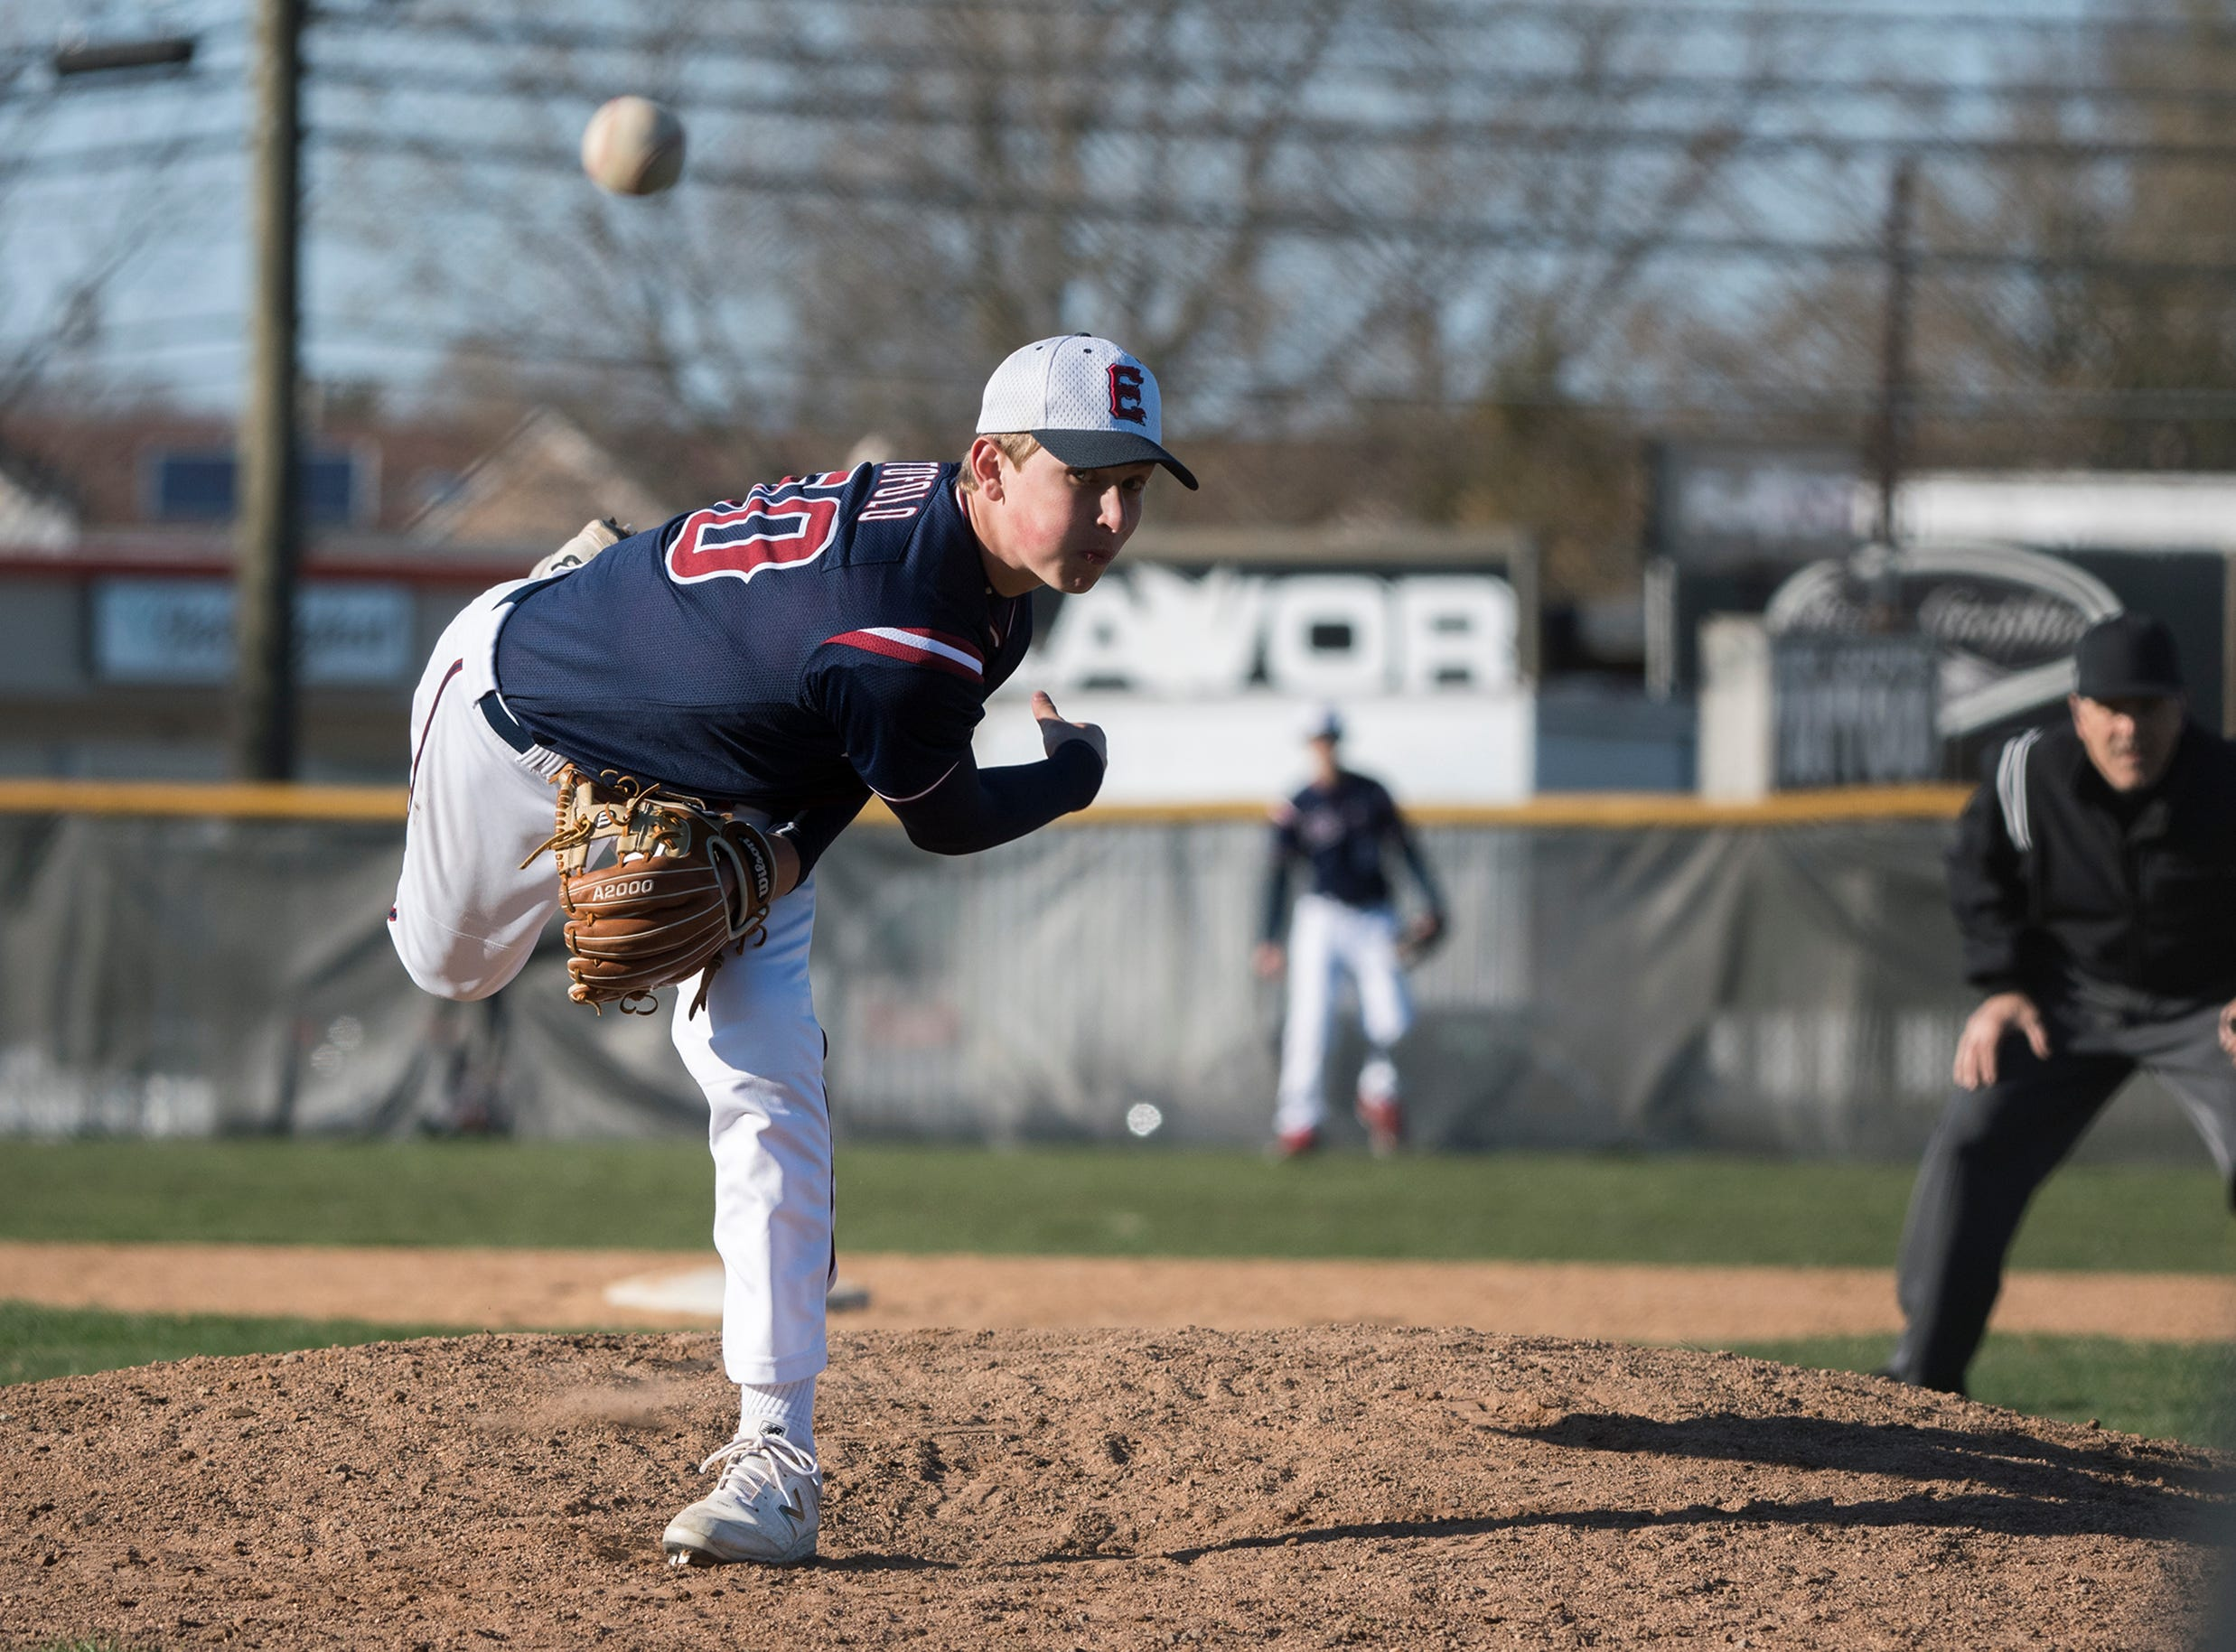 Eastern's Andrew Tofolo (50) pitches on Opening Day against Bishop Eustace Monday, April 1, 2019 in Pennsauken. Eustace won 12-0.